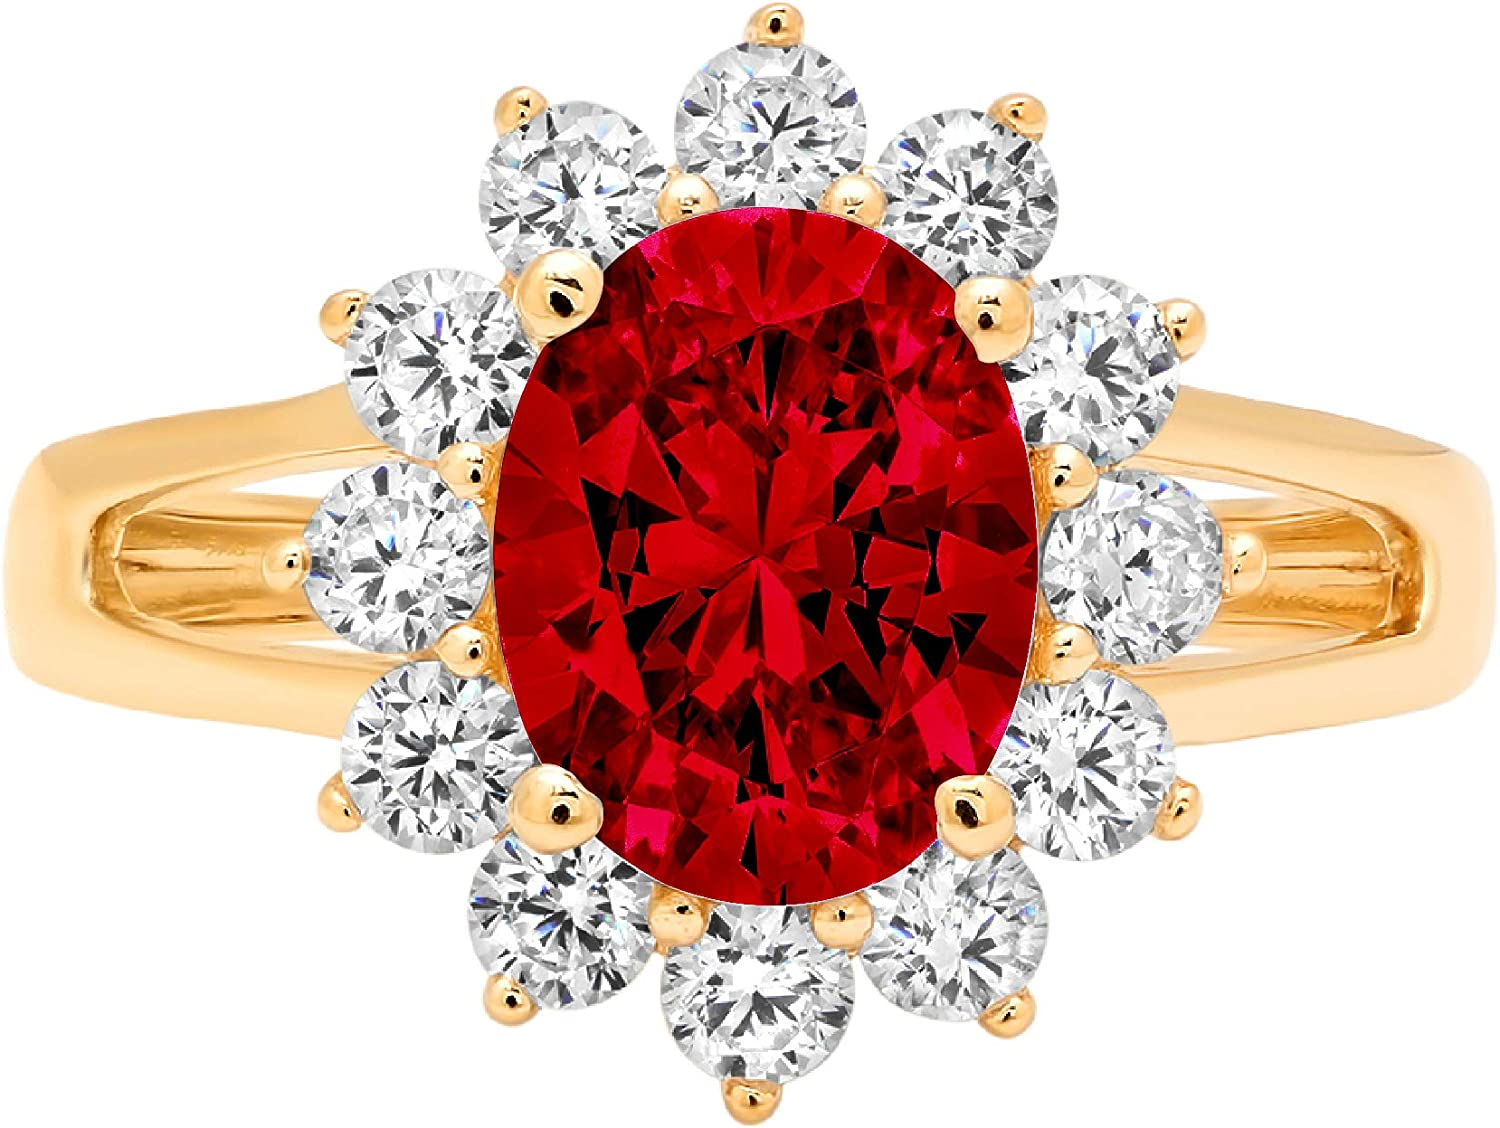 2.3ct Brilliant Oval Cut Solitaire with Accent Halo Natural Crimson Deep Red Garnet Gemstone Ideal VVS1 Engagement Promise Statement Anniversary Bridal Wedding ring Solid 14k Yellow Gold